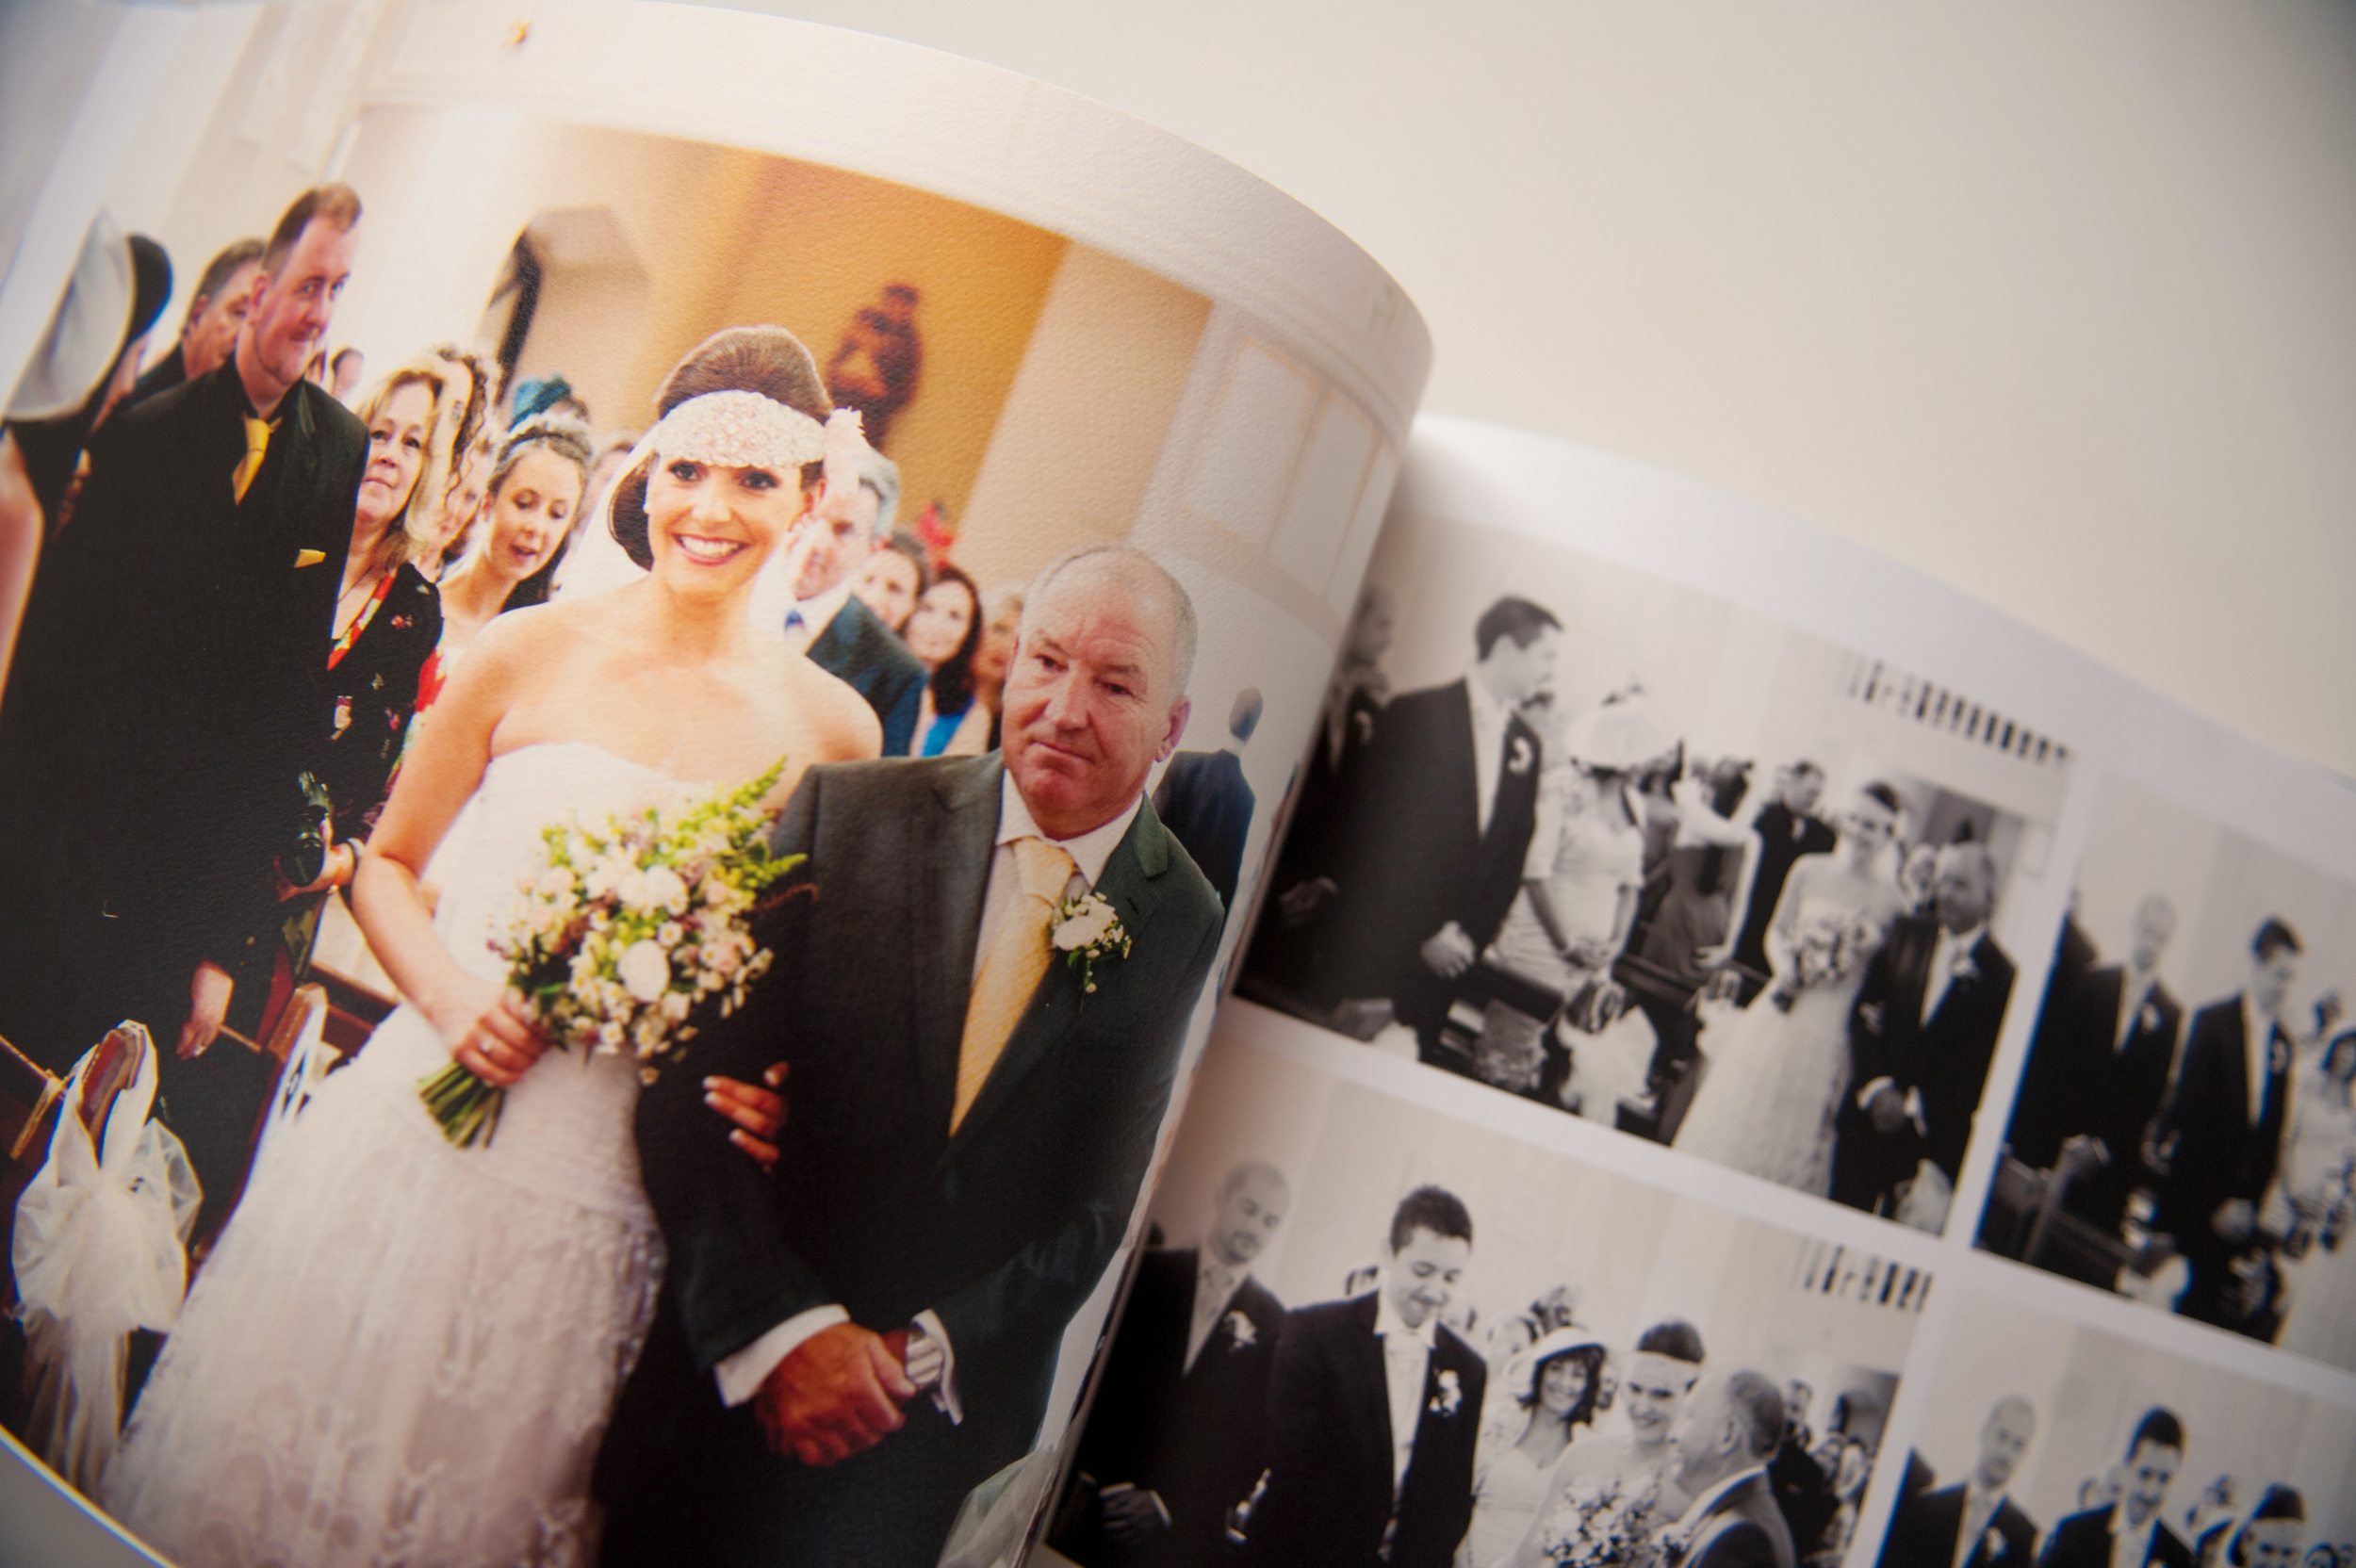 Your wedding photography will be treasured for years to come.